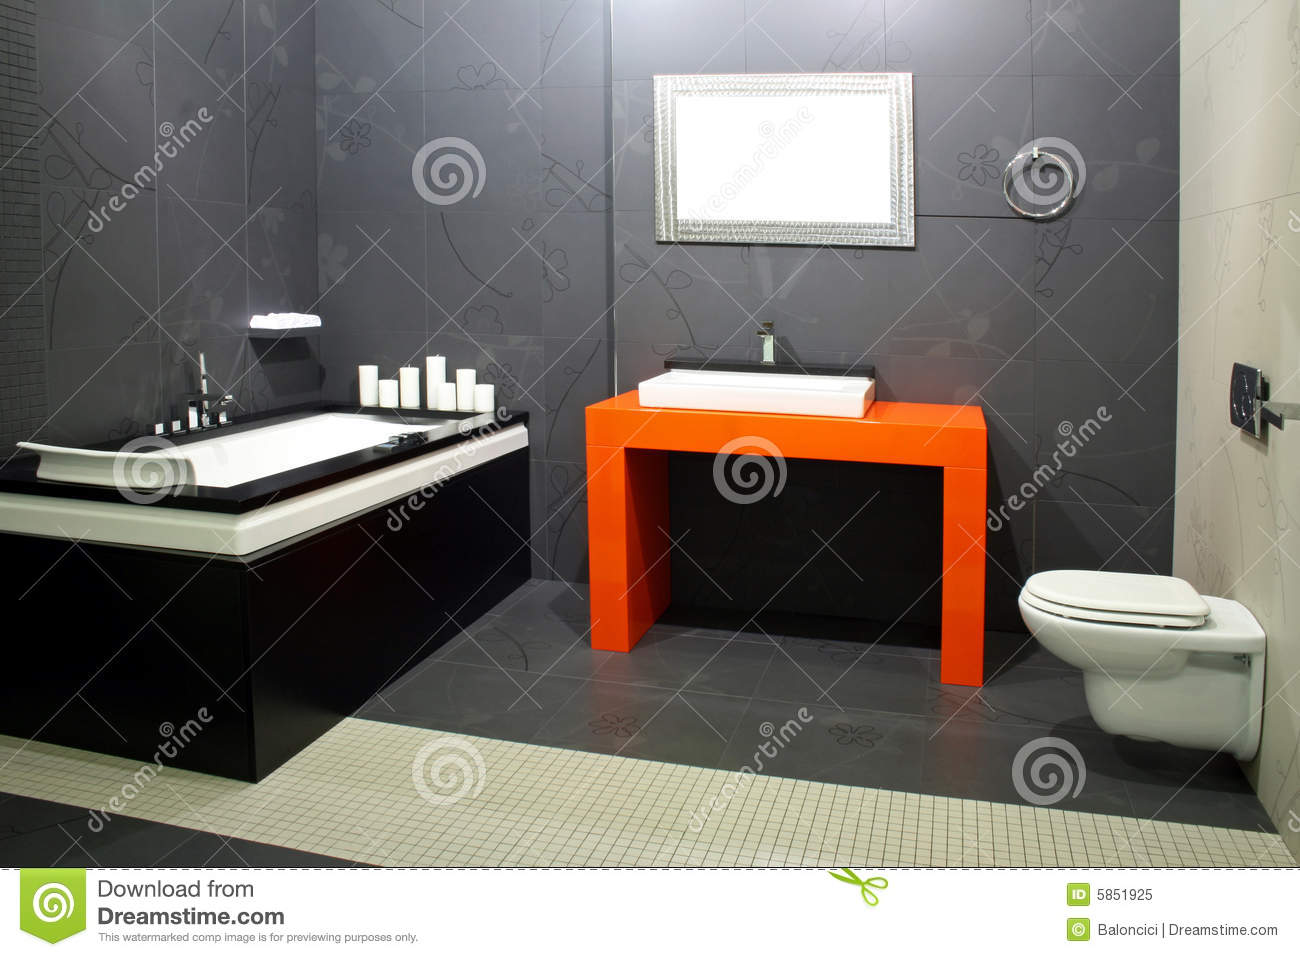 schwarzes badezimmer 2 stockbild bild von restroom. Black Bedroom Furniture Sets. Home Design Ideas